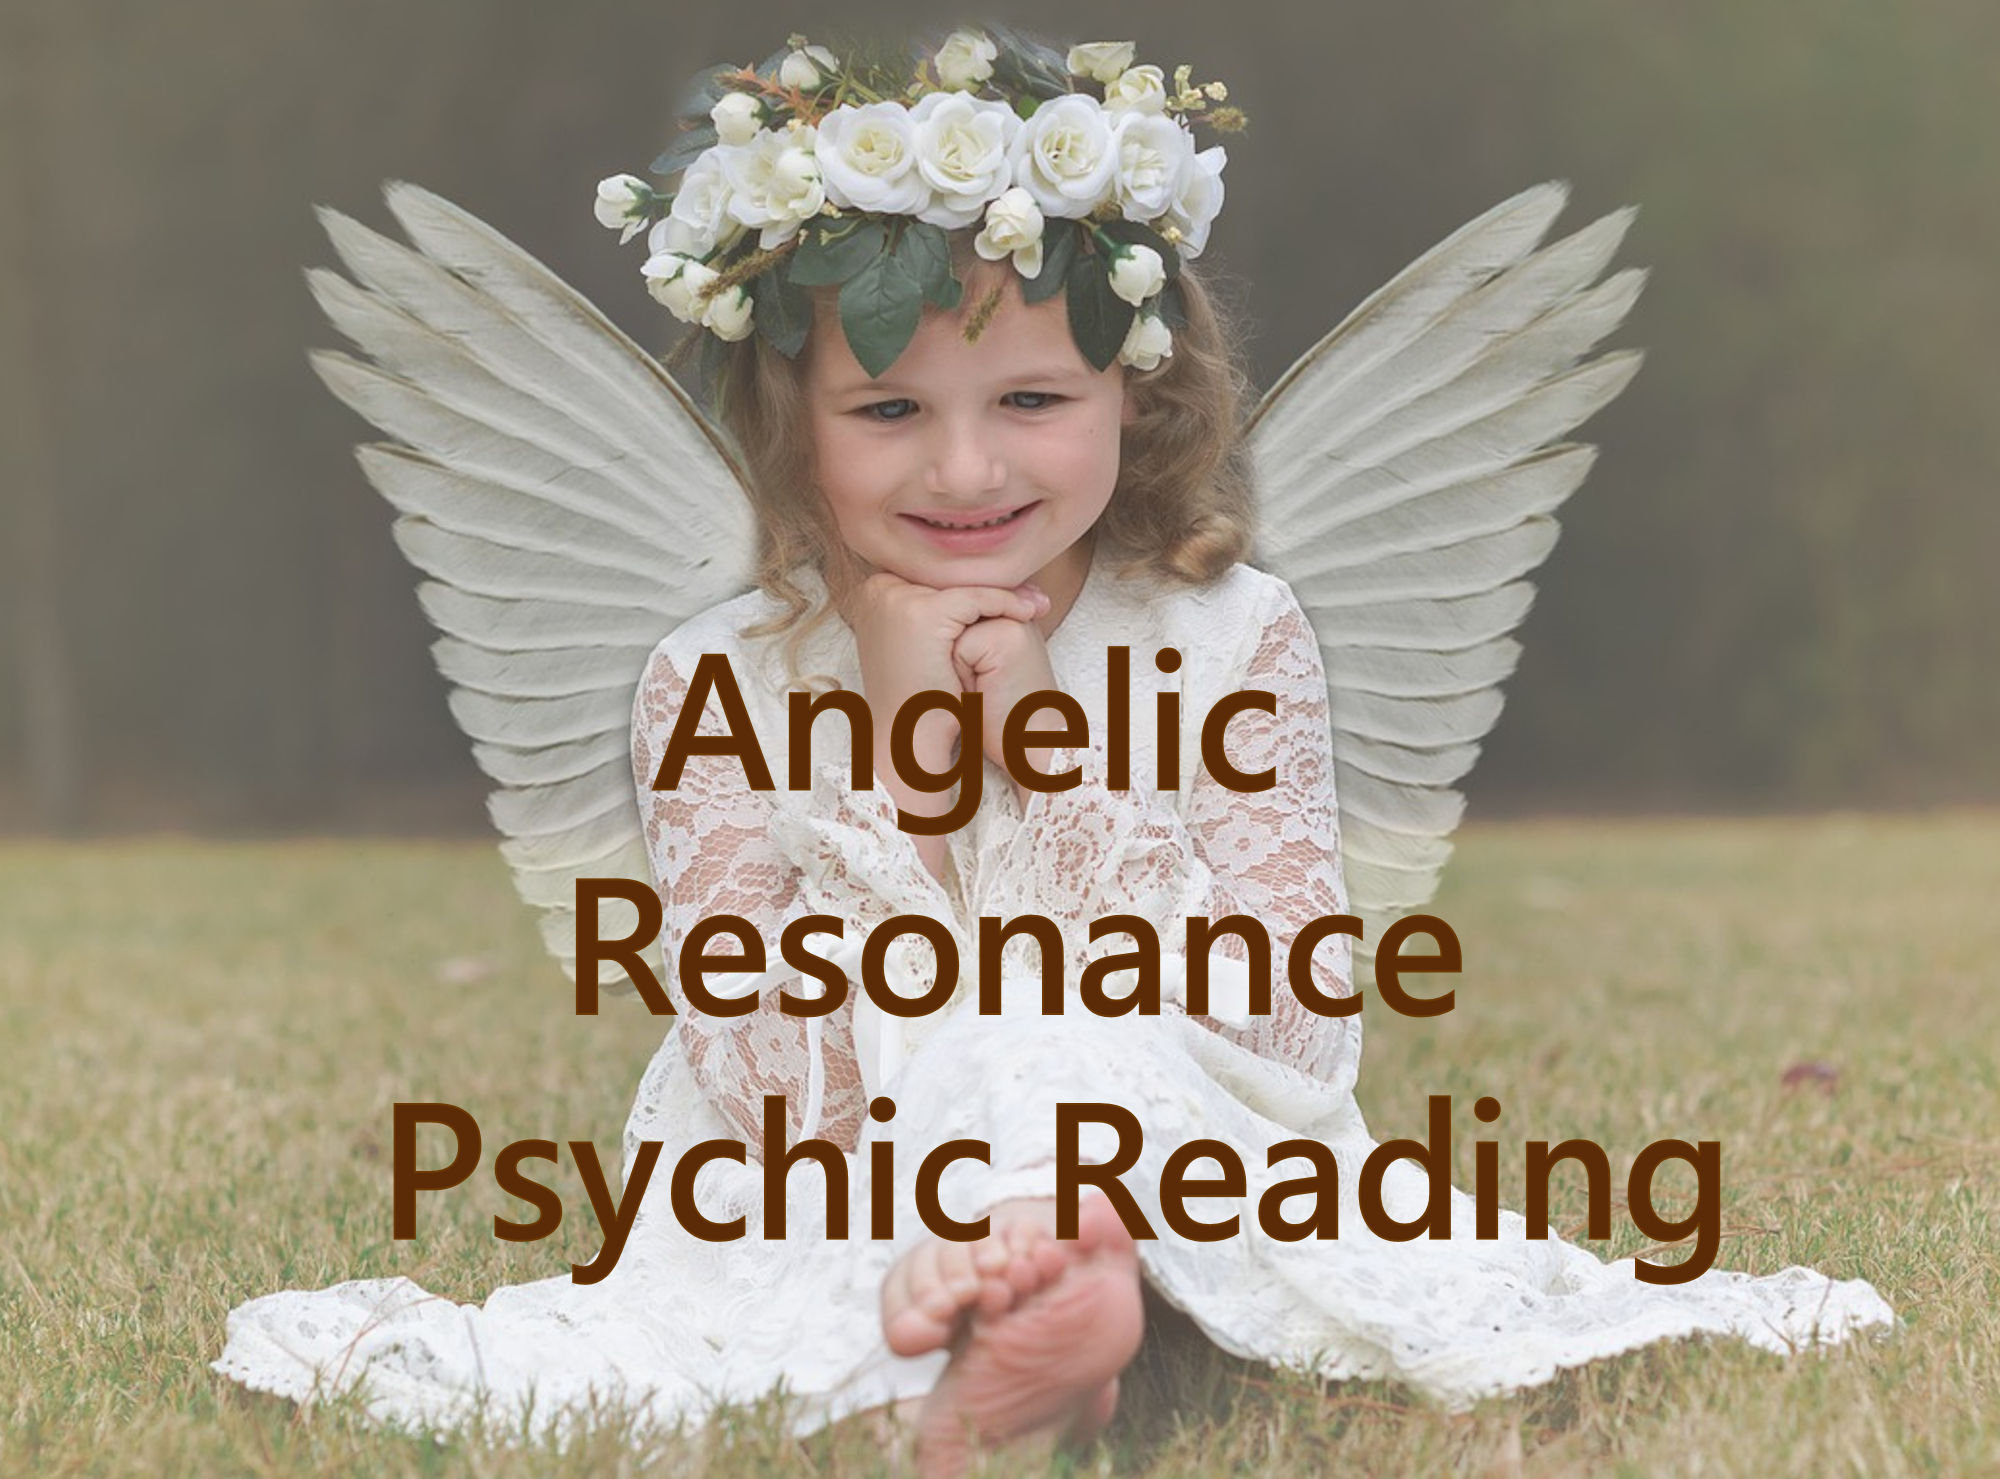 The Ways An Angel Psychic Reading Can Transform Your Life